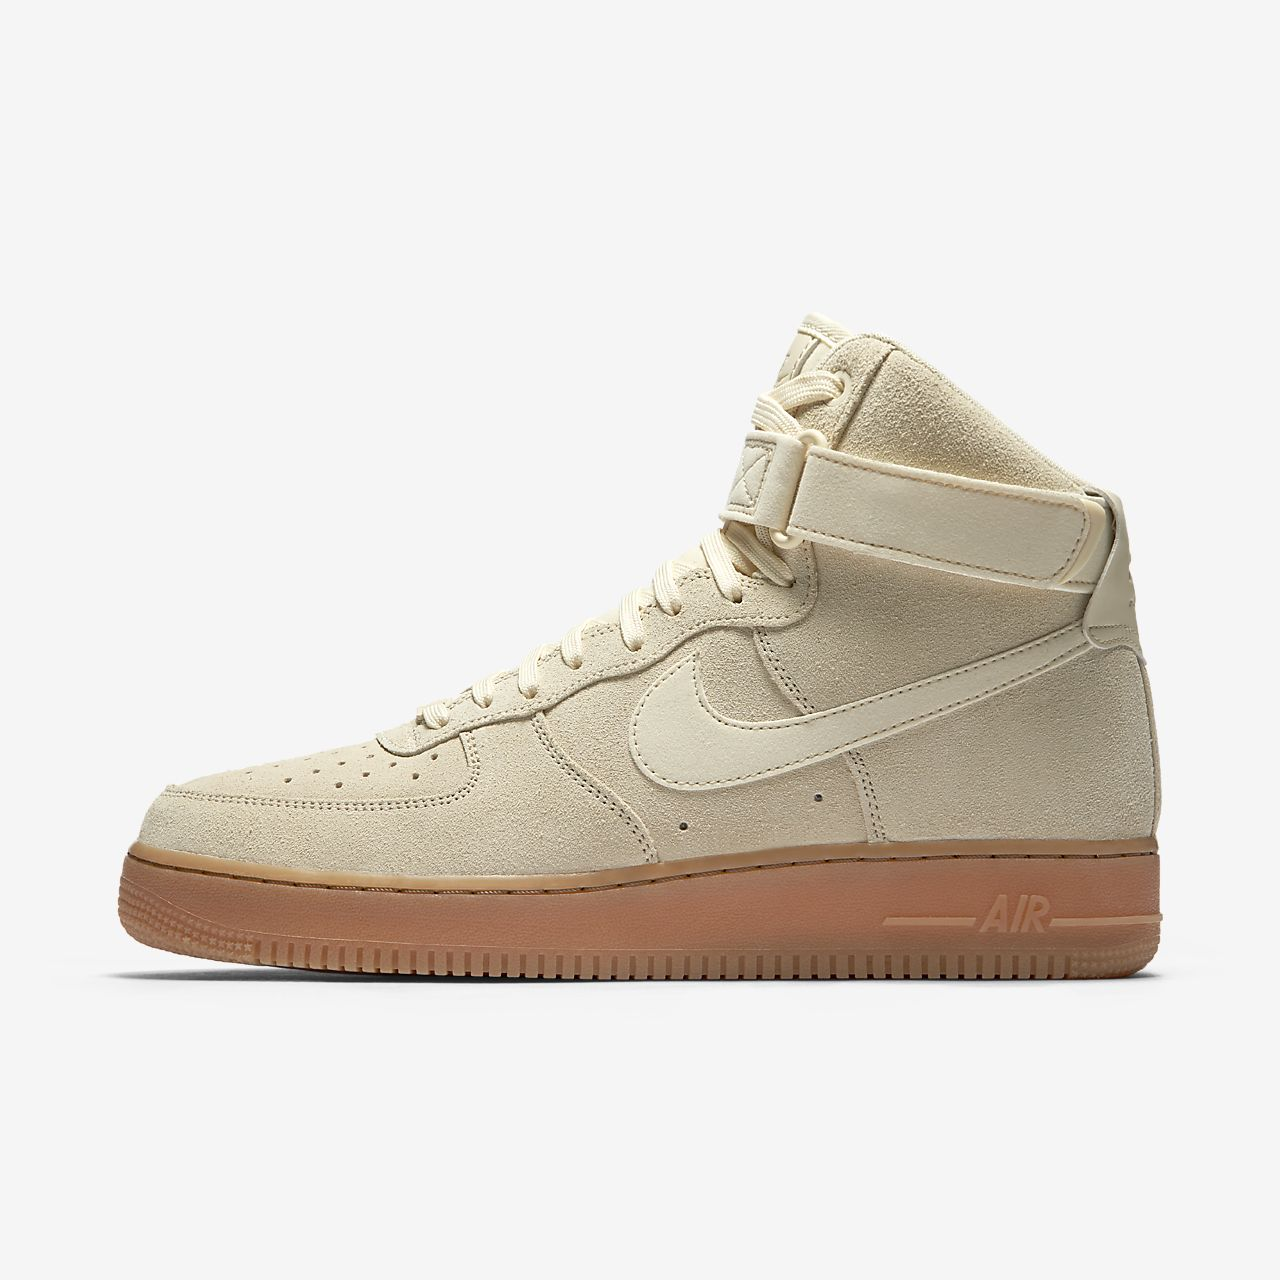 Nike Air Force 1 High '07 LV8 Suede 男子运动鞋